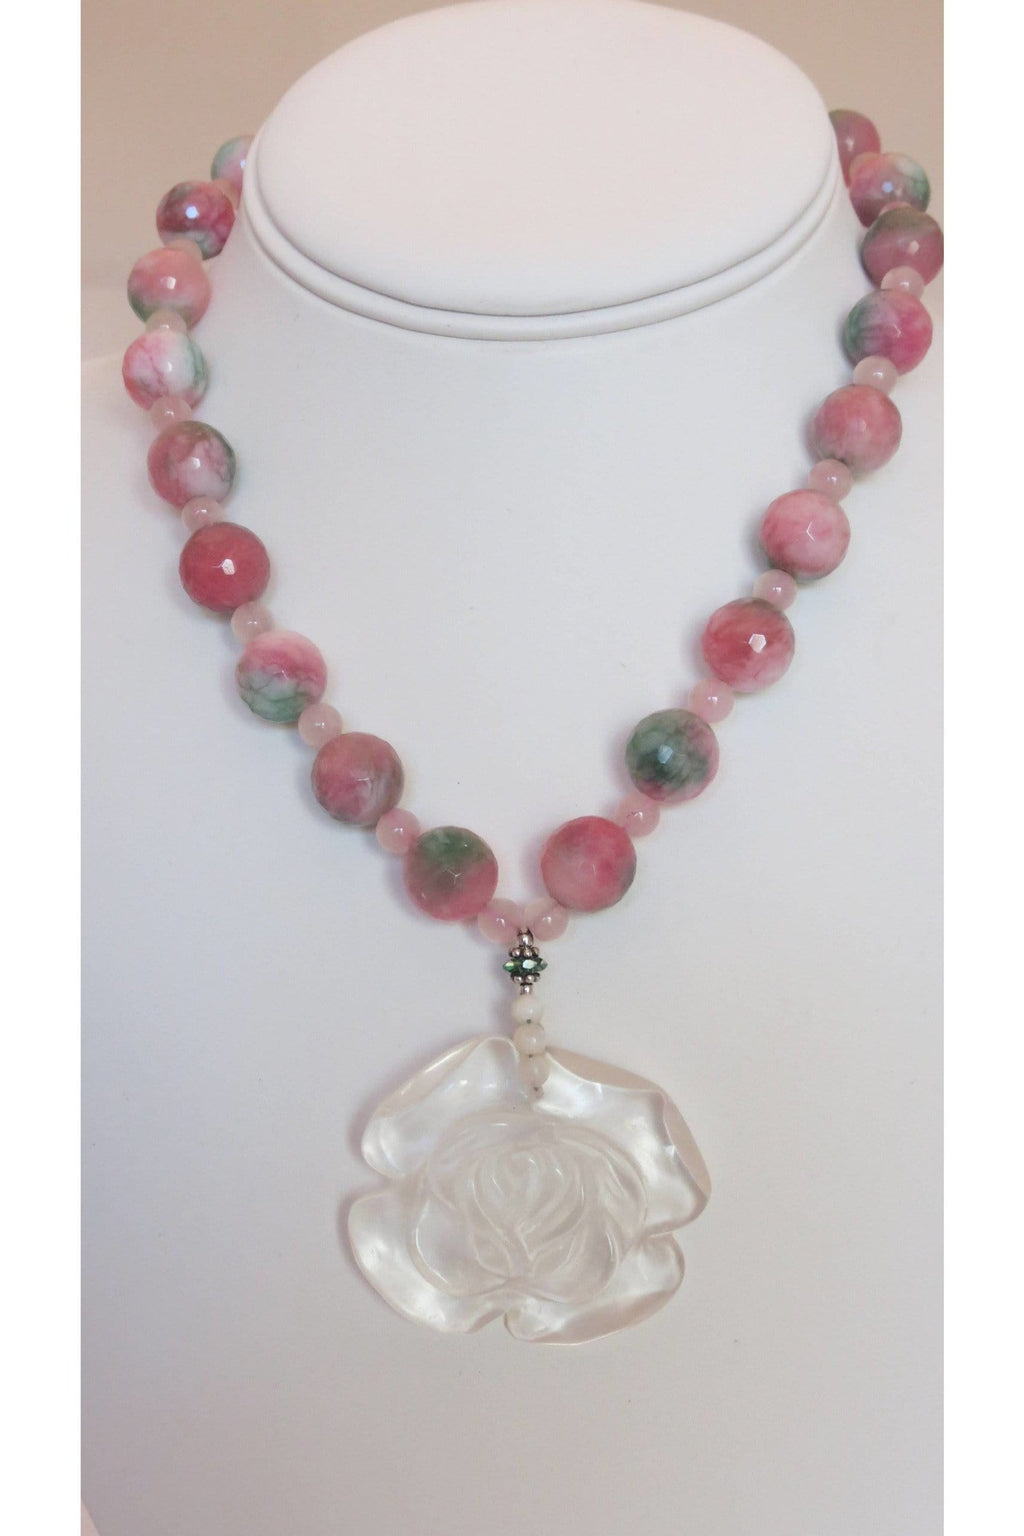 Carved Rose Pendant With Candied Jade & Rose Quartz - Himelhoch's